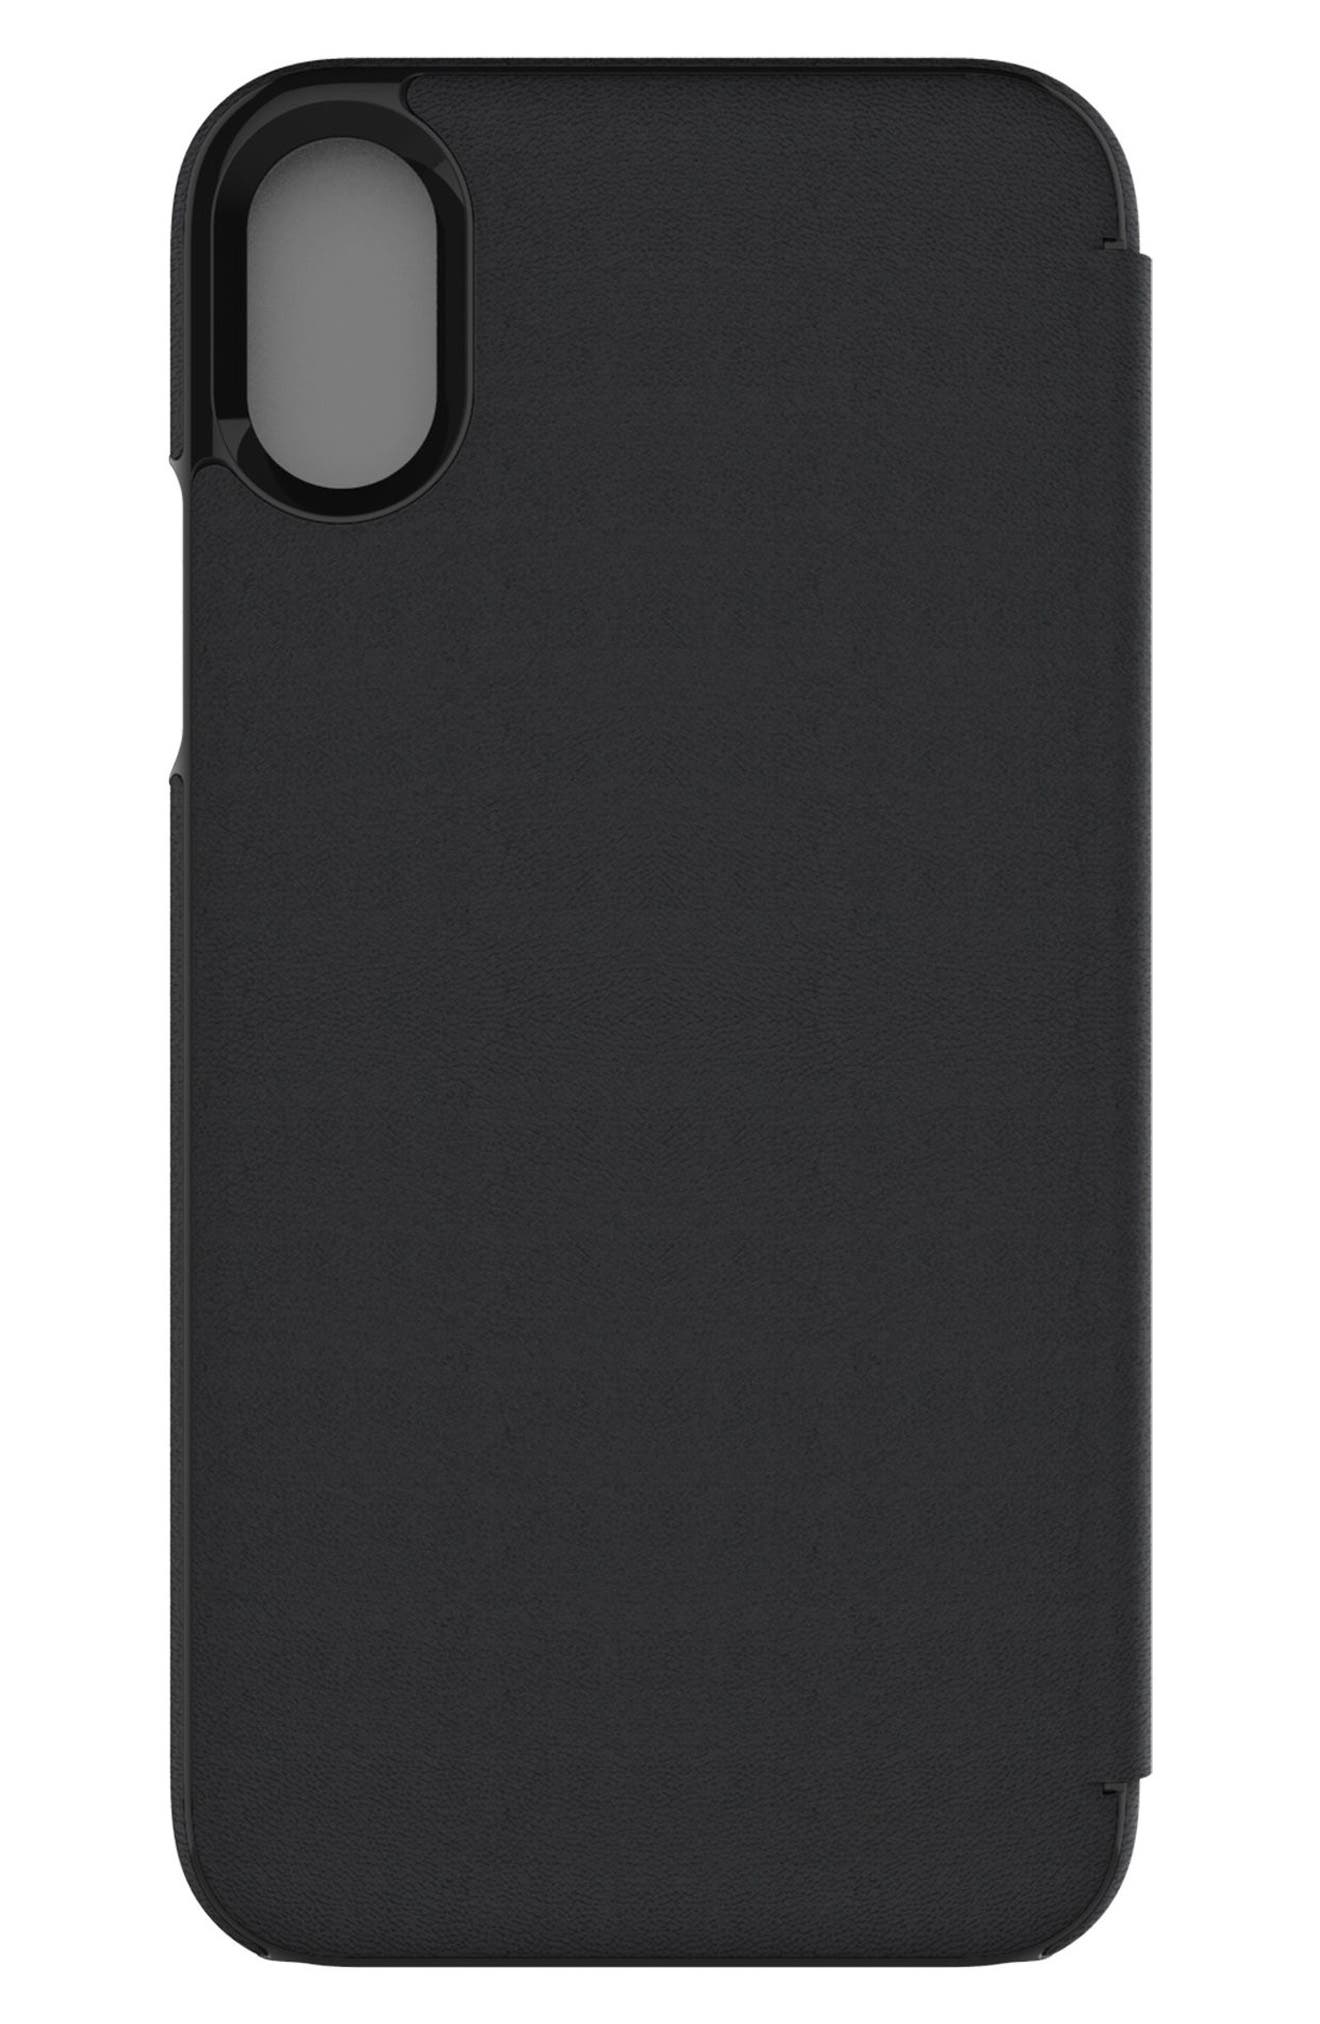 Privacy Folio iPhone X Case,                             Alternate thumbnail 6, color,                             Black Gunmetal